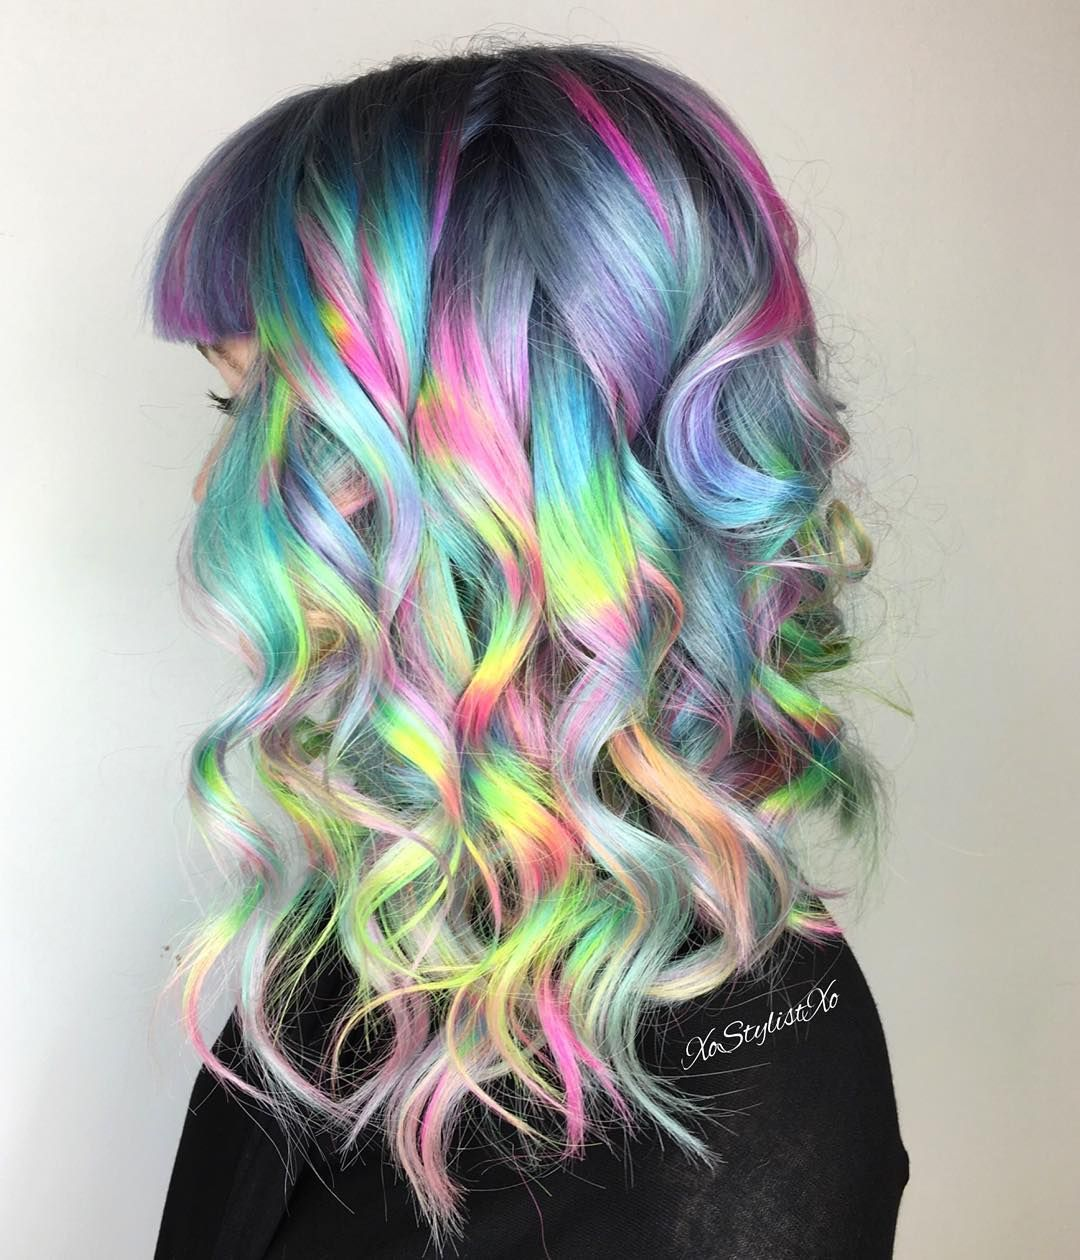 Cool boy hair dye holographic hair color  hair creations guy and hair coloring